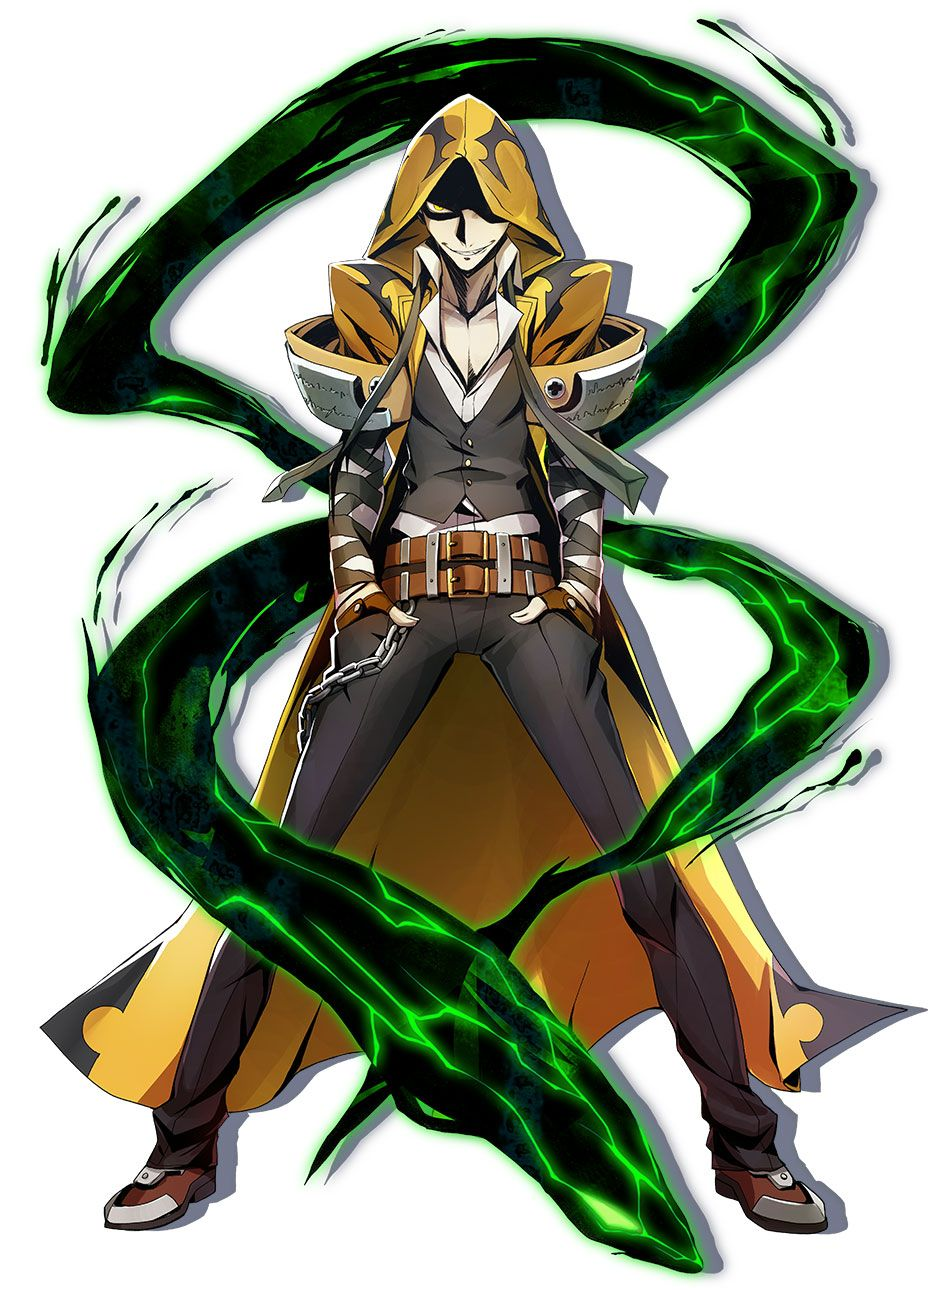 Terumi from BlazBlue: Central Fiction